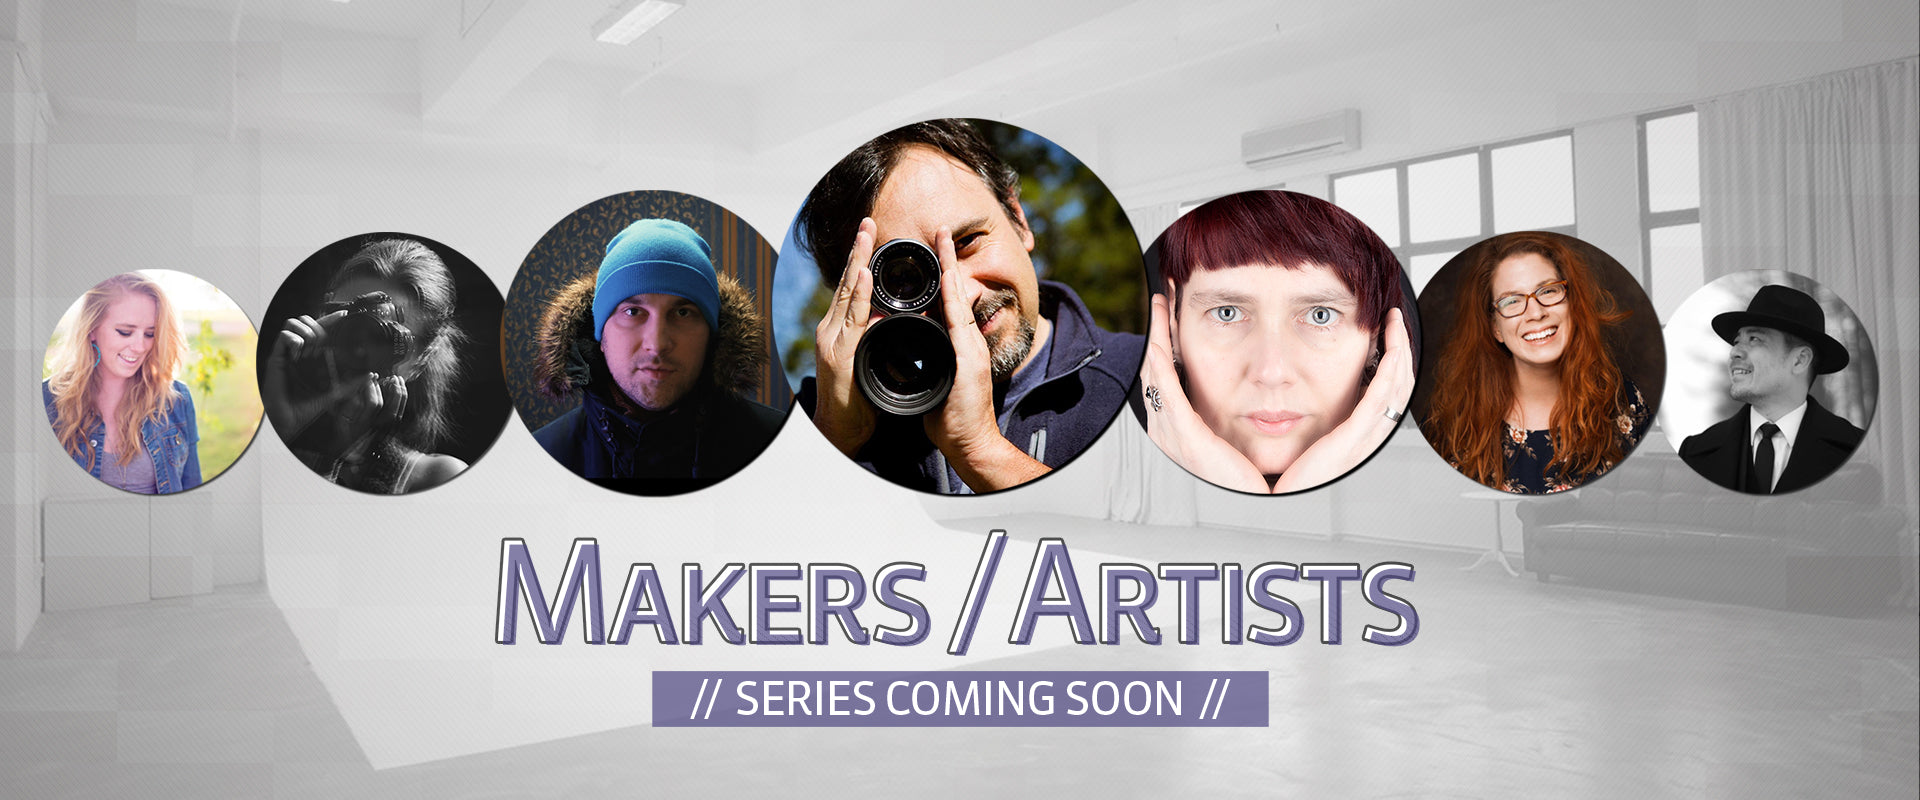 Lensbaby Artists Teo Kefalopoulos Makers and Artists series coming soon